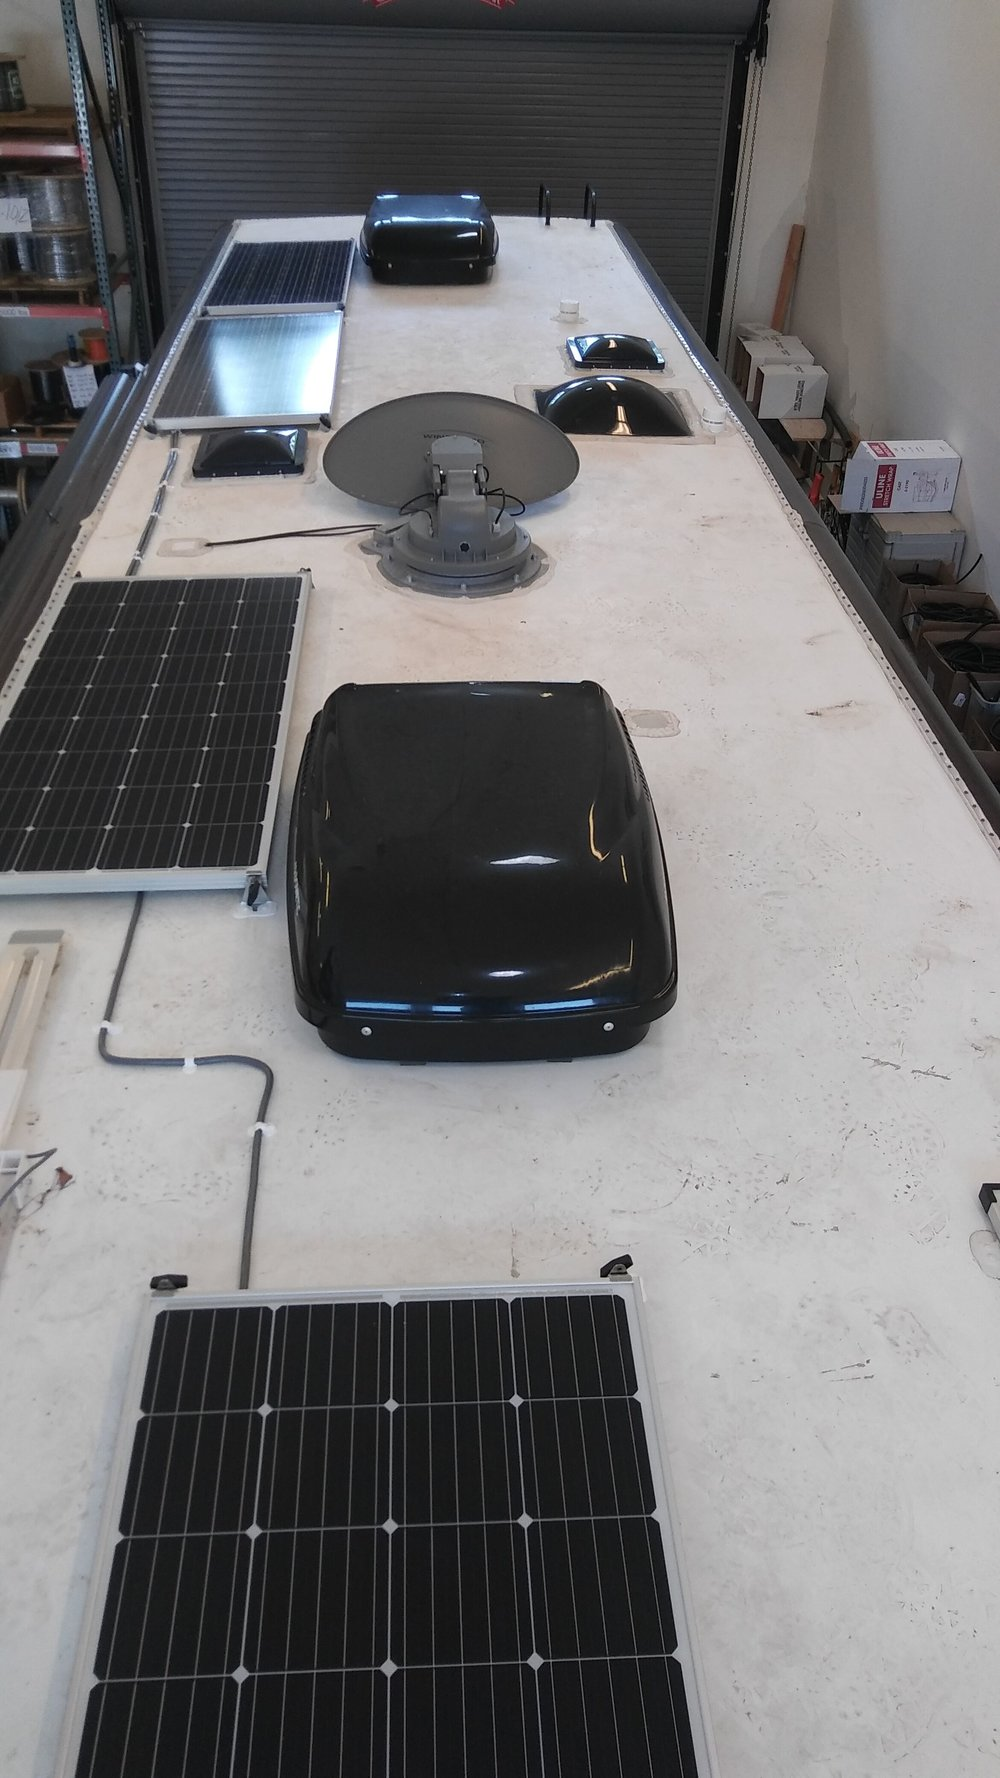 Solar Panel Installation For Rvs Trailers Am Power Energy Diagram On Inverter Ac Wiring 720w Charging System